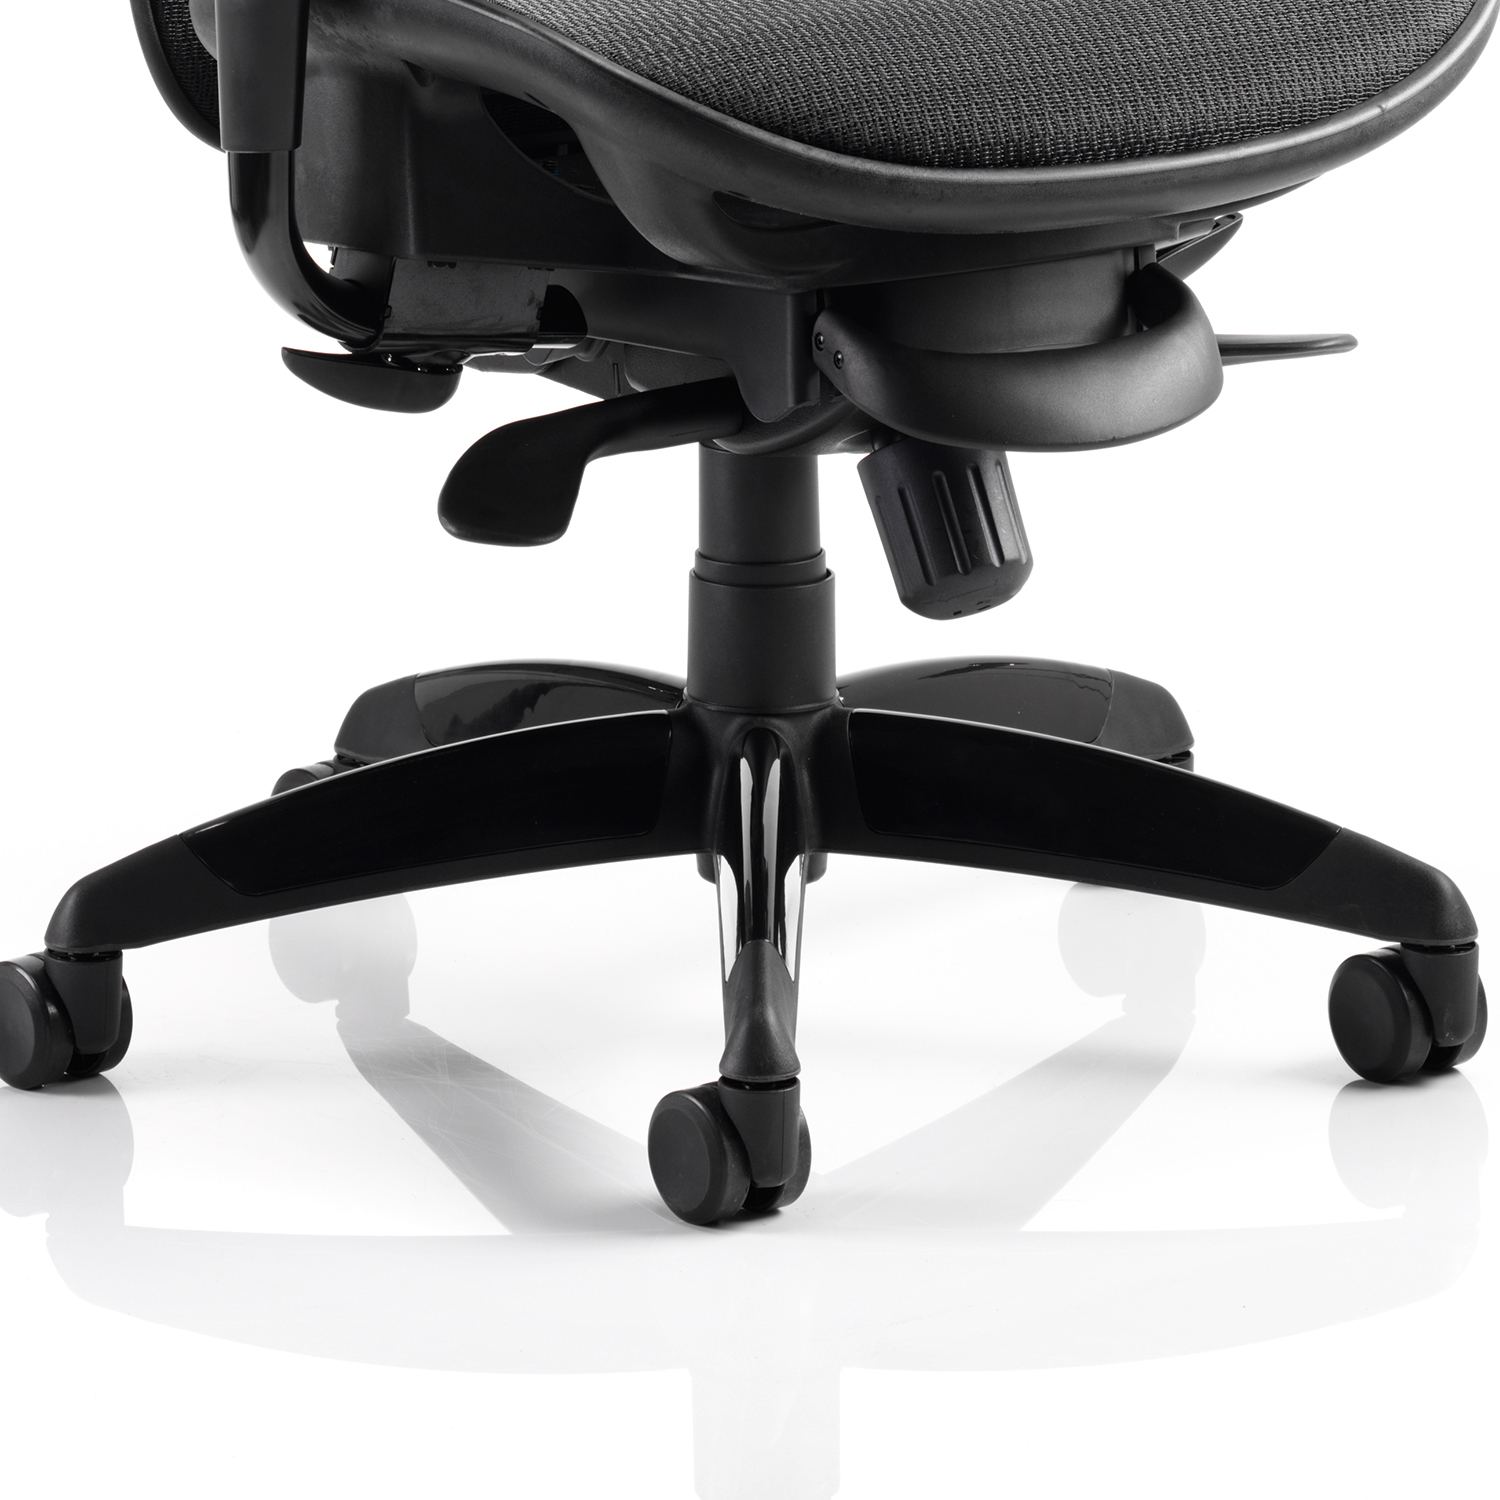 Adroit Stealth Shadow Ergo Posture Chair With Arms Mesh Seat And Back Black Ref PO000021